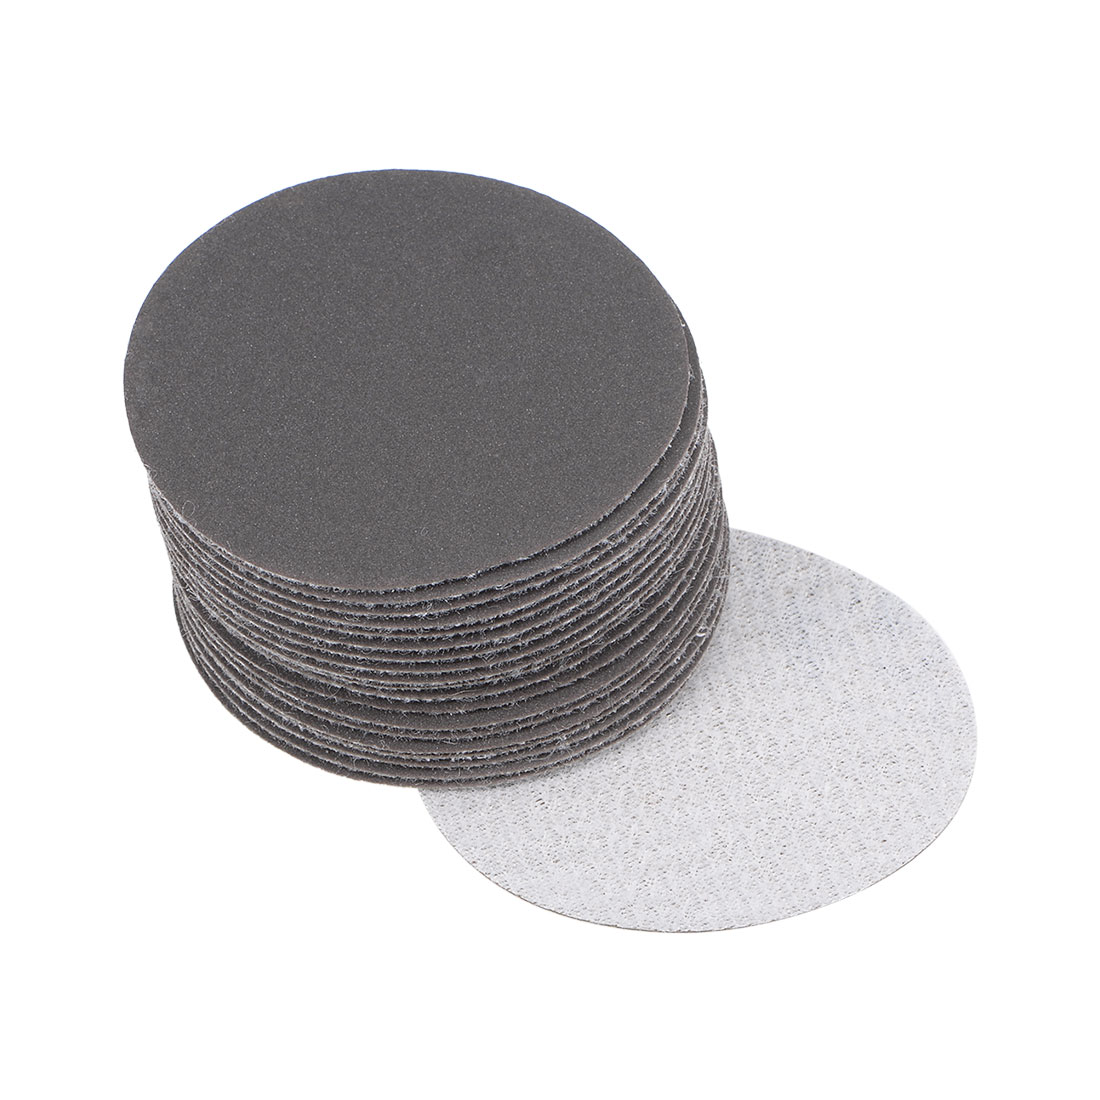 2 inch Wet Dry Discs 600 Grit Hook and Loop Sanding Disc Silicon Carbide 20pcs